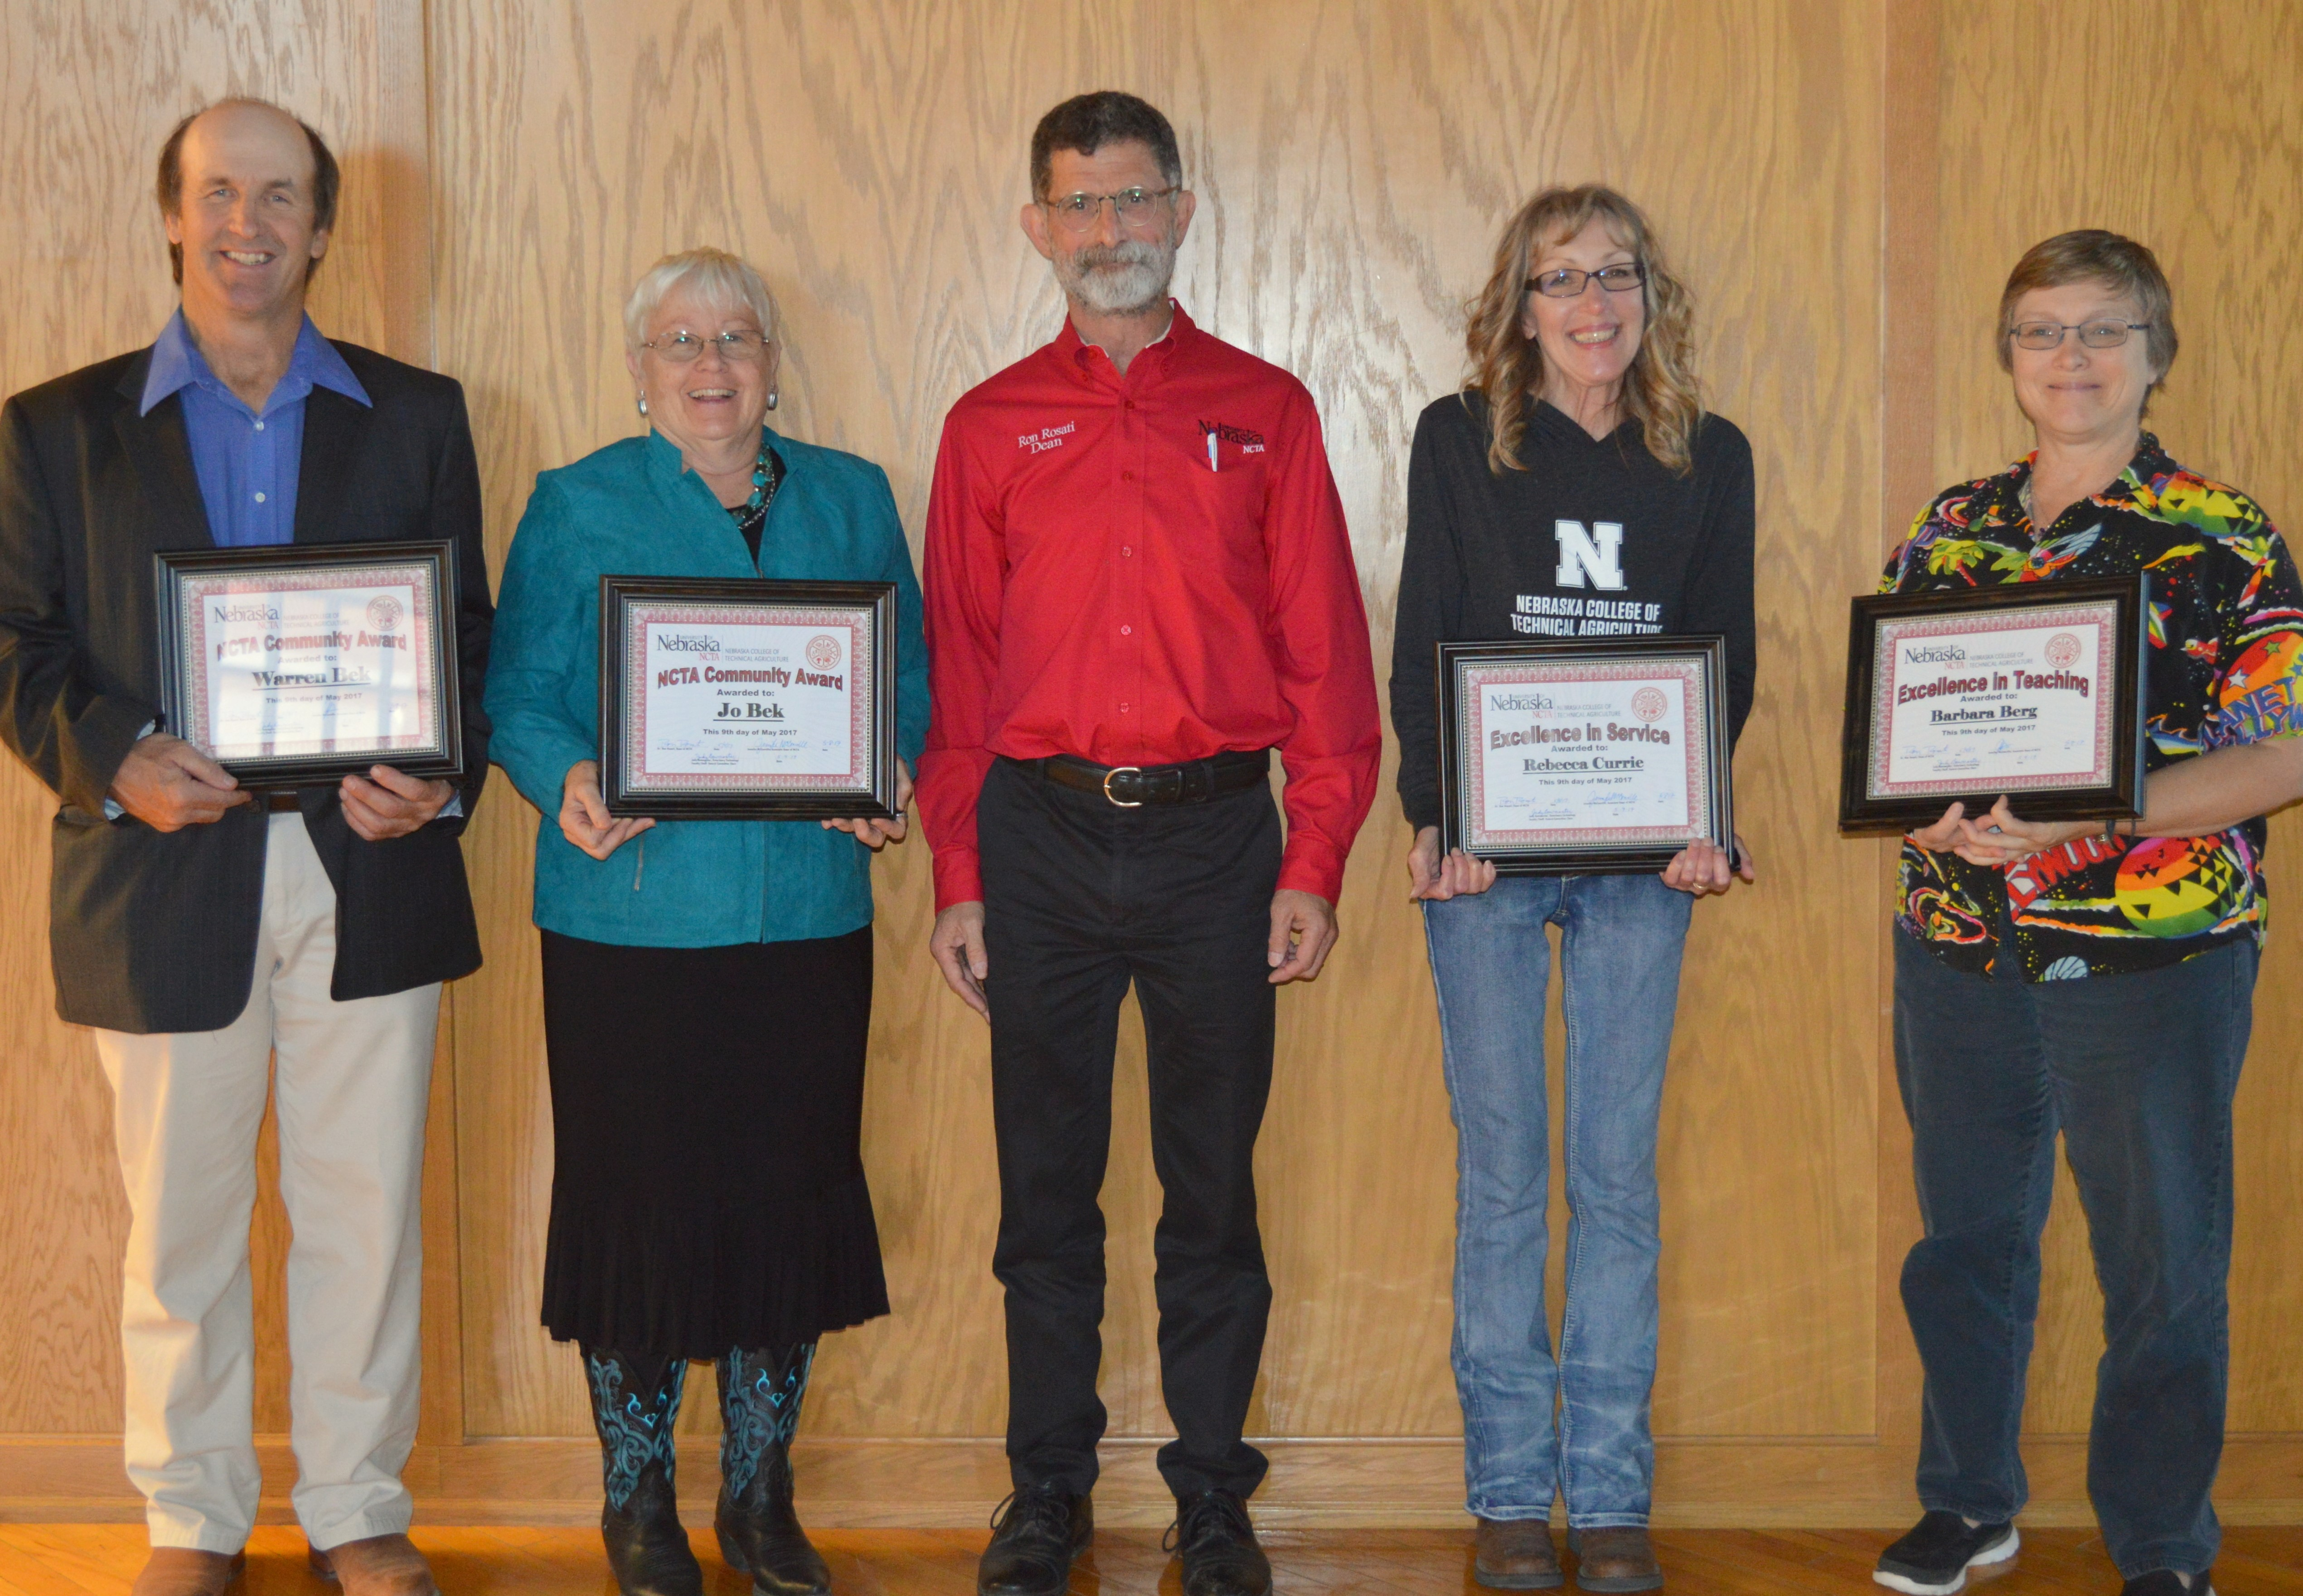 NCTA award recipients, from left, Community Service honorees Warren and Jo Bek, Dean Ron Rosati, Excellence in Service to Becky Currie, and Excellence in Teaching to Barb Berg. (Hauptman/NCTA Photo)